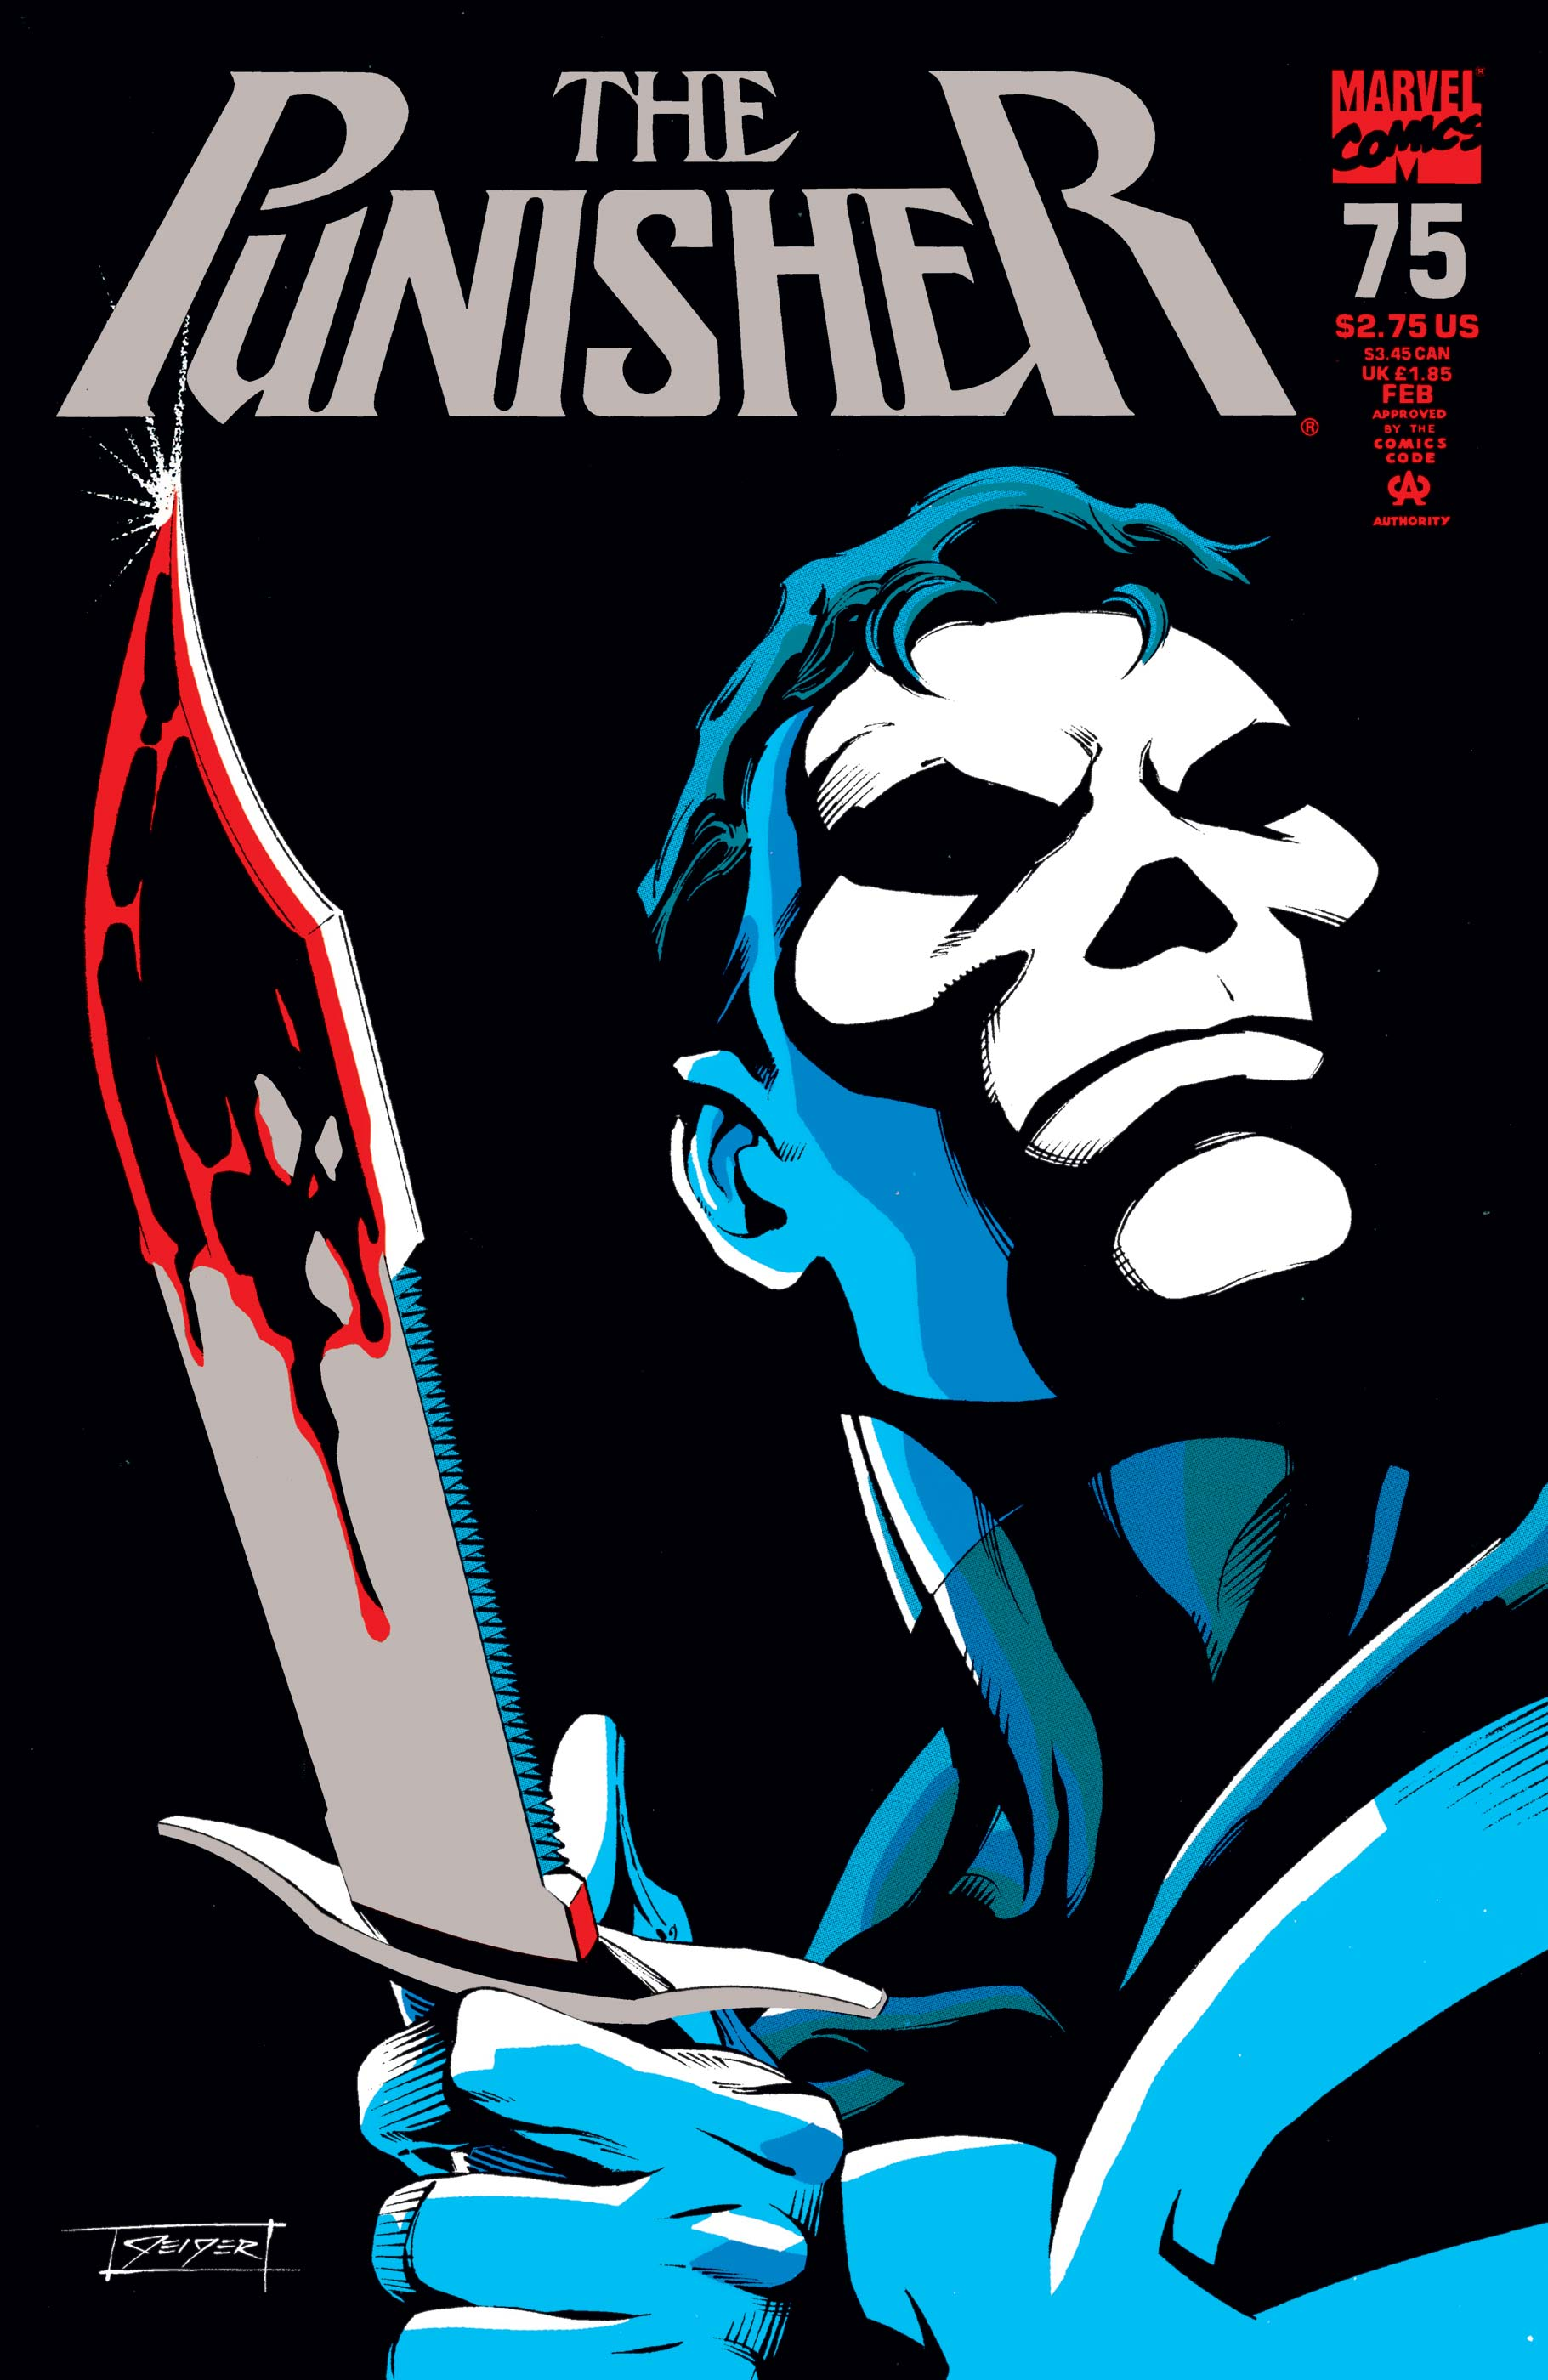 The Punisher (1987) #75